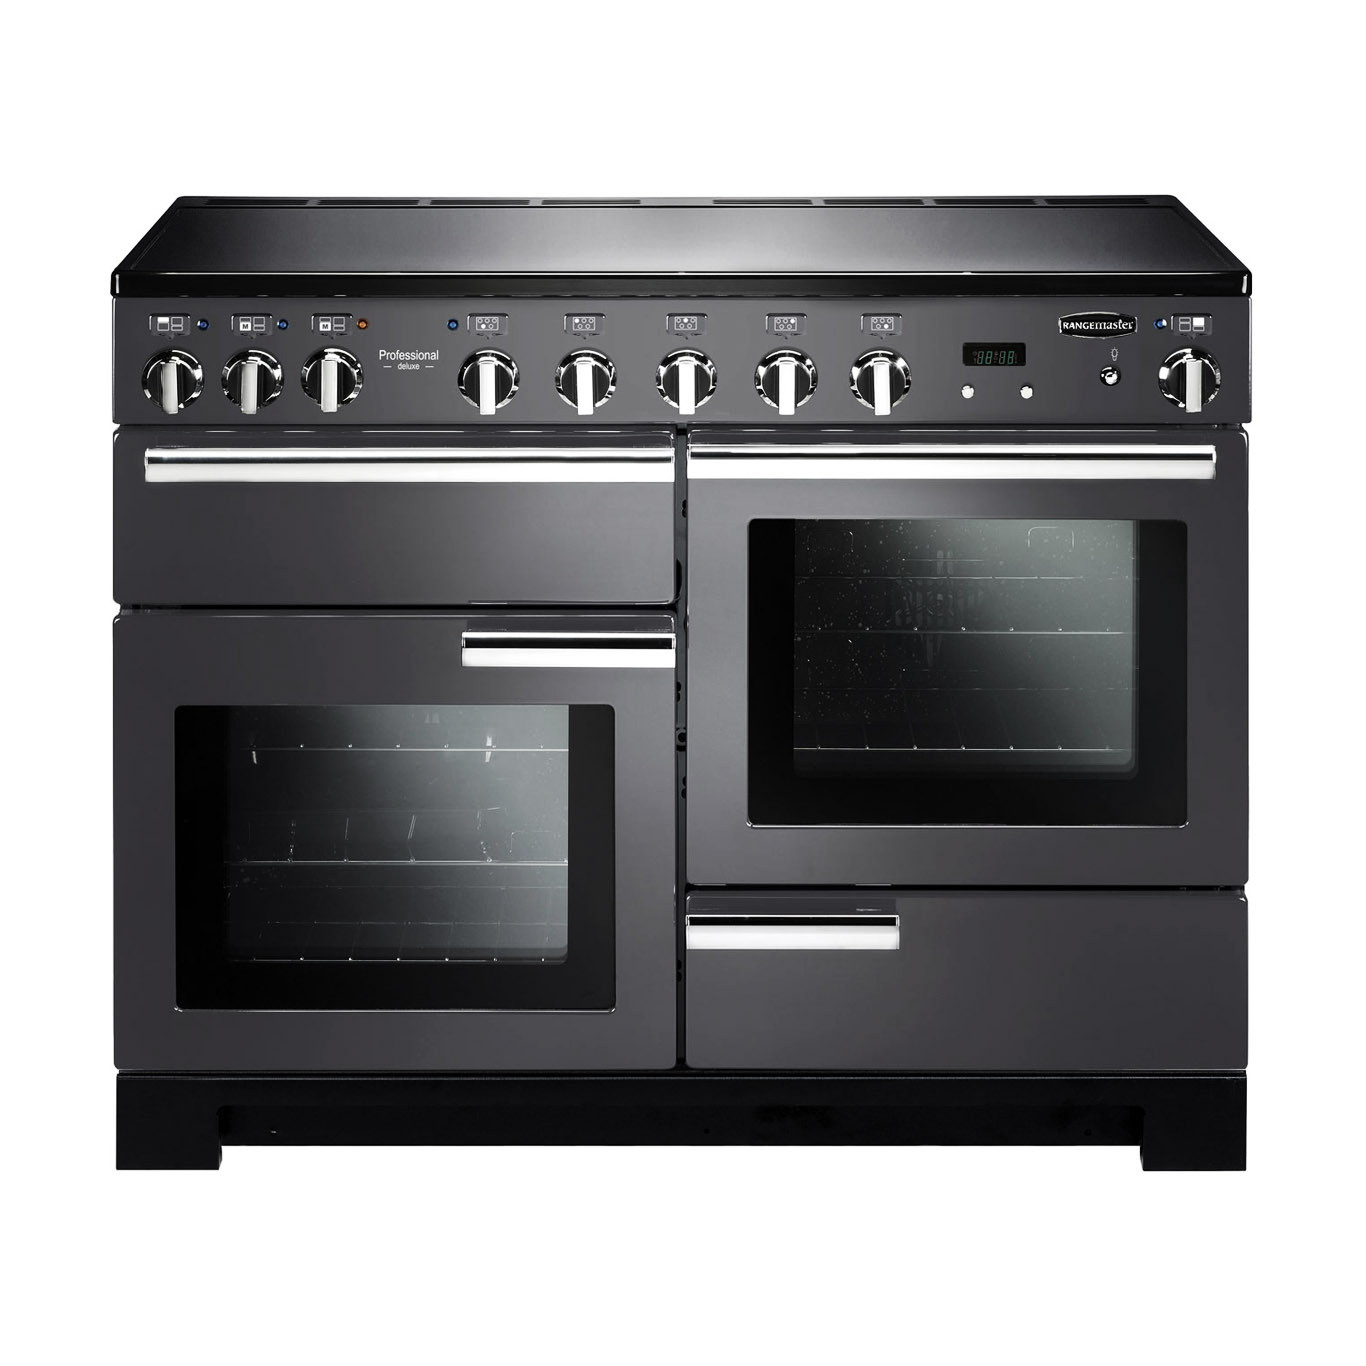 Rangemaster Professional Deluxe 110 Induction Slate Range Cooker 10591